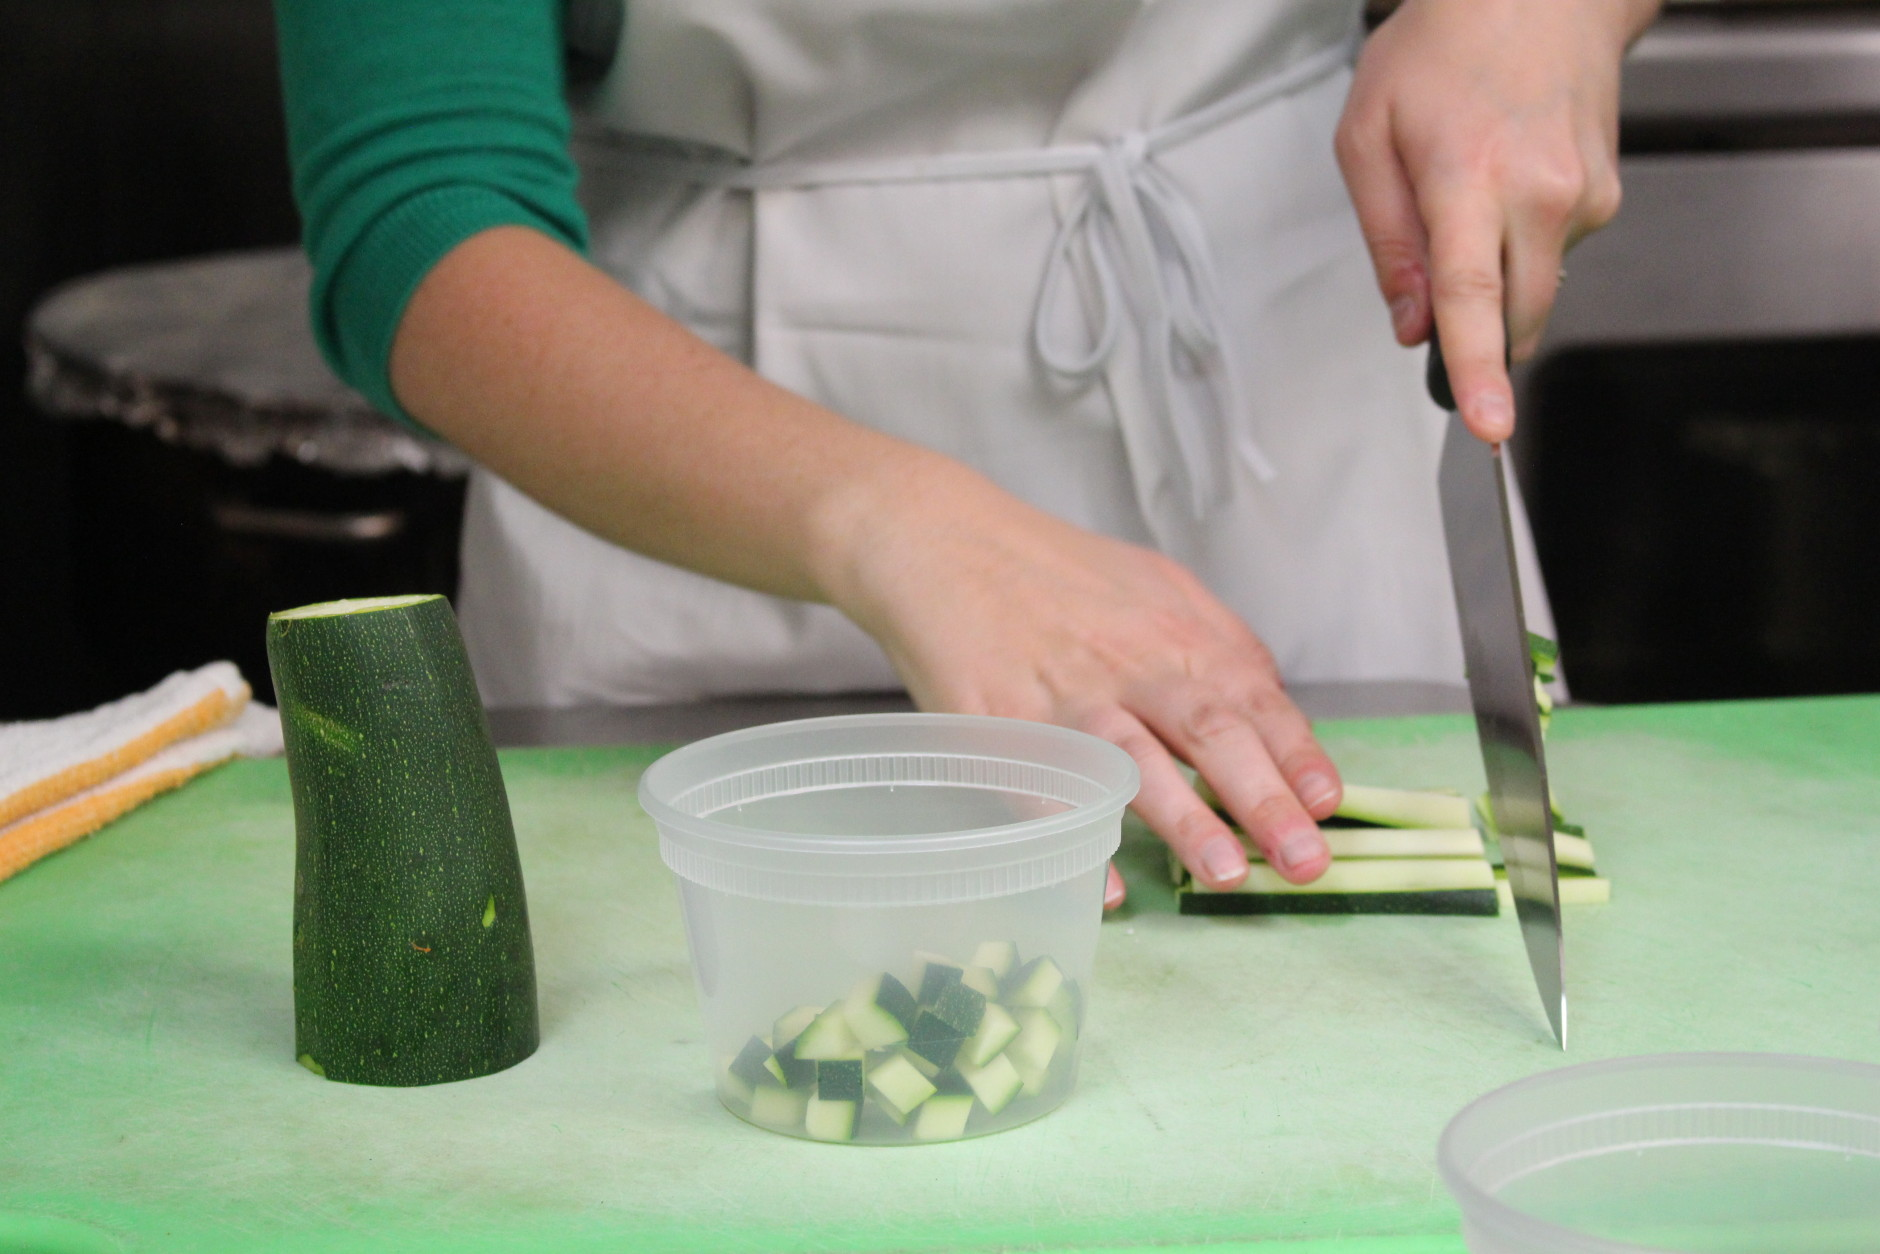 Crisp zucchini adds a pop of color to the paella ingredients. (WTOP/Dana Gooley)